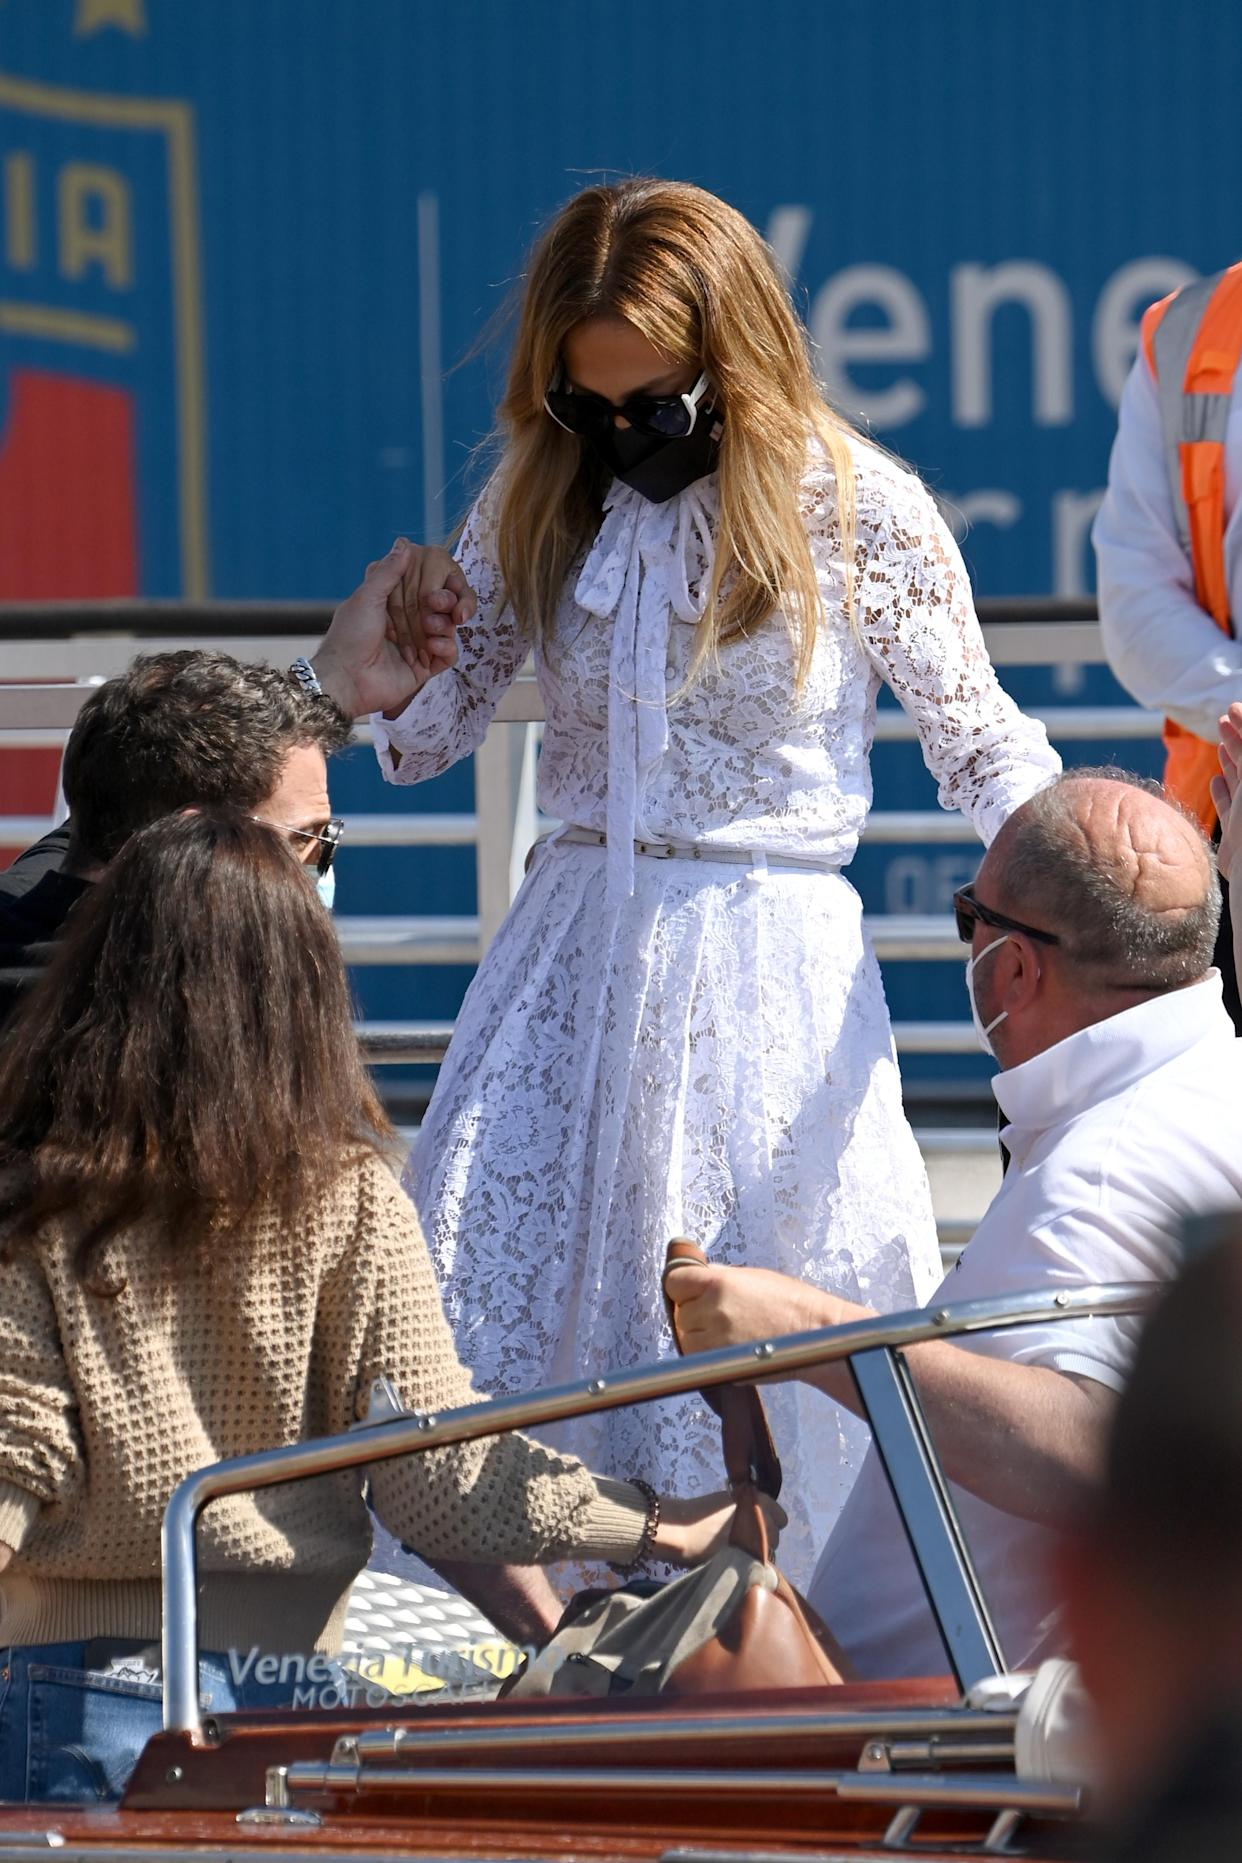 Jennifer Lopez wears a £3300 dress from Italian fashion house Valentino to arrive at the 78th Venice International Film Festival. (Getty Images)